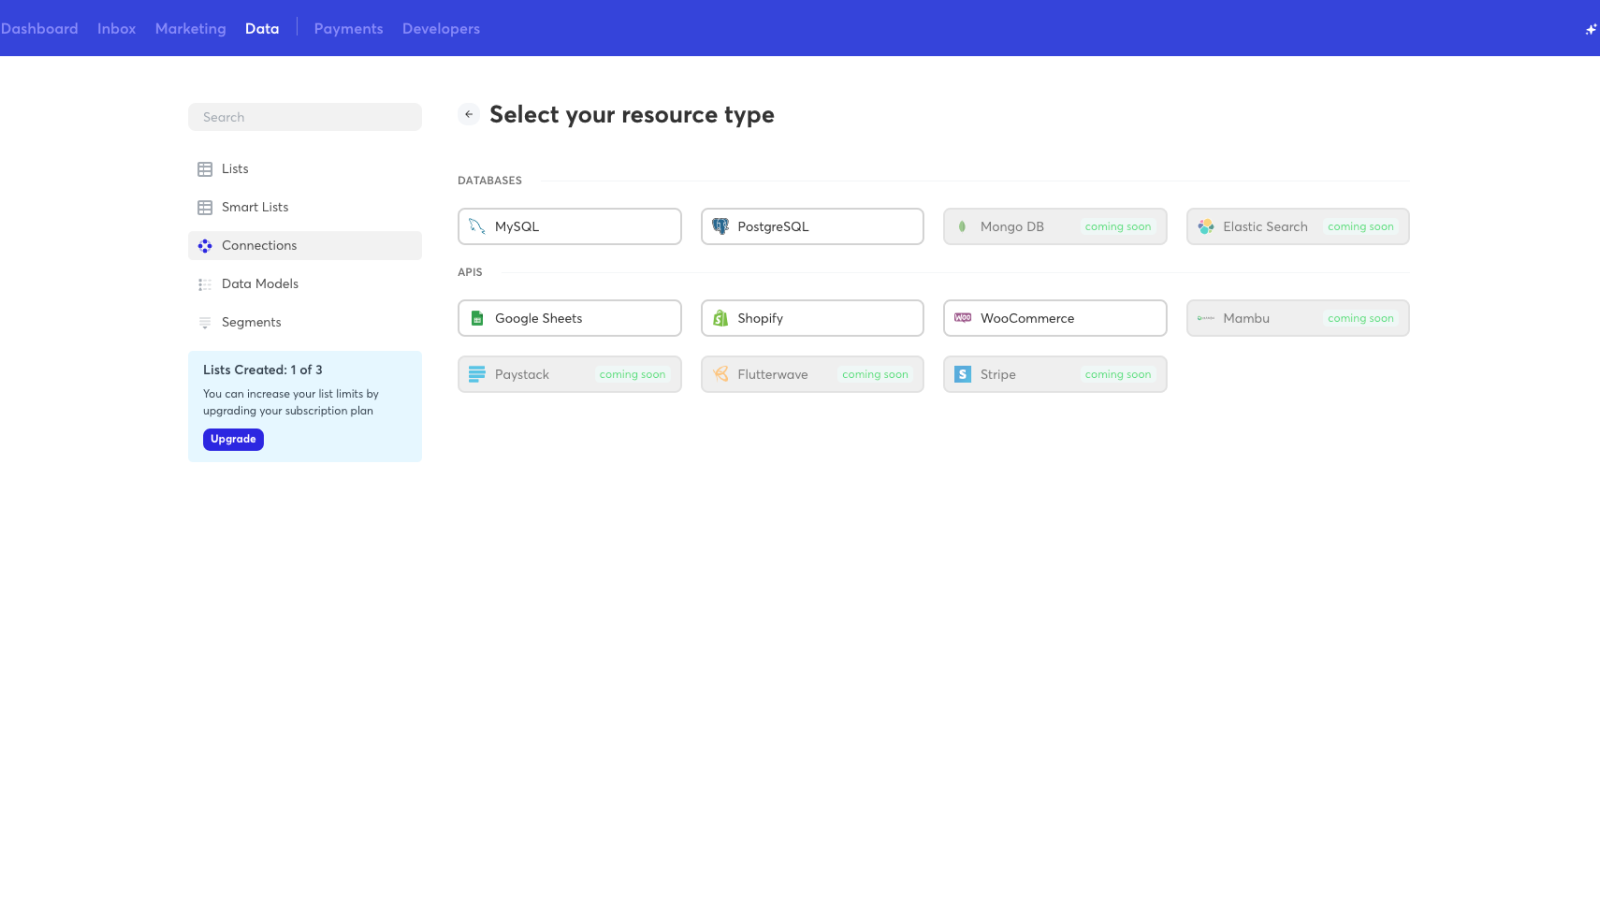 Select Shopify to make a Shopify connection in Simpu.